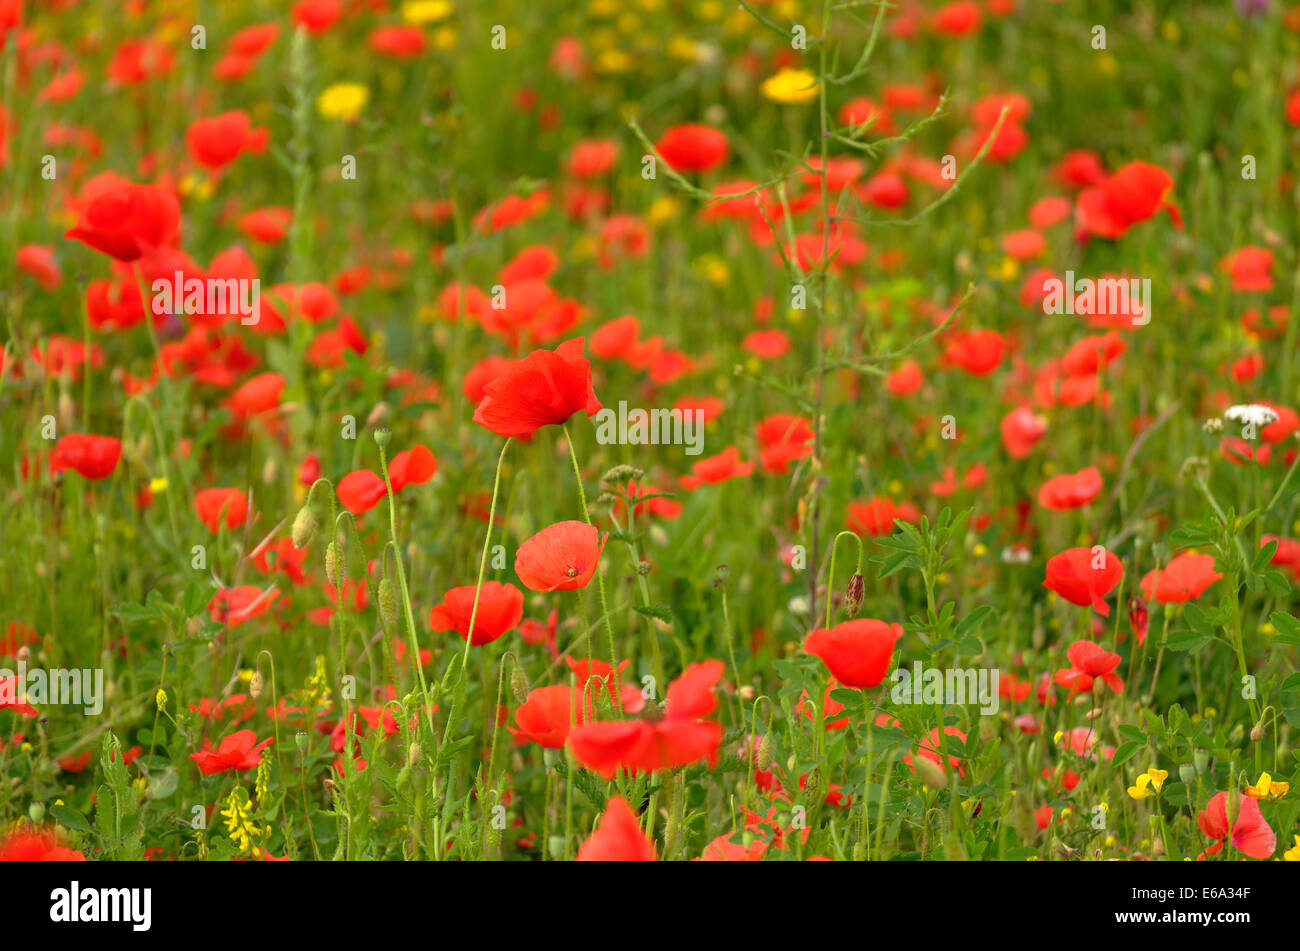 Roadside Wild Flowers Poppy Stock Photos   Roadside Wild Flowers     Meadow flowers  Poppies   Buttercups   Stock Image